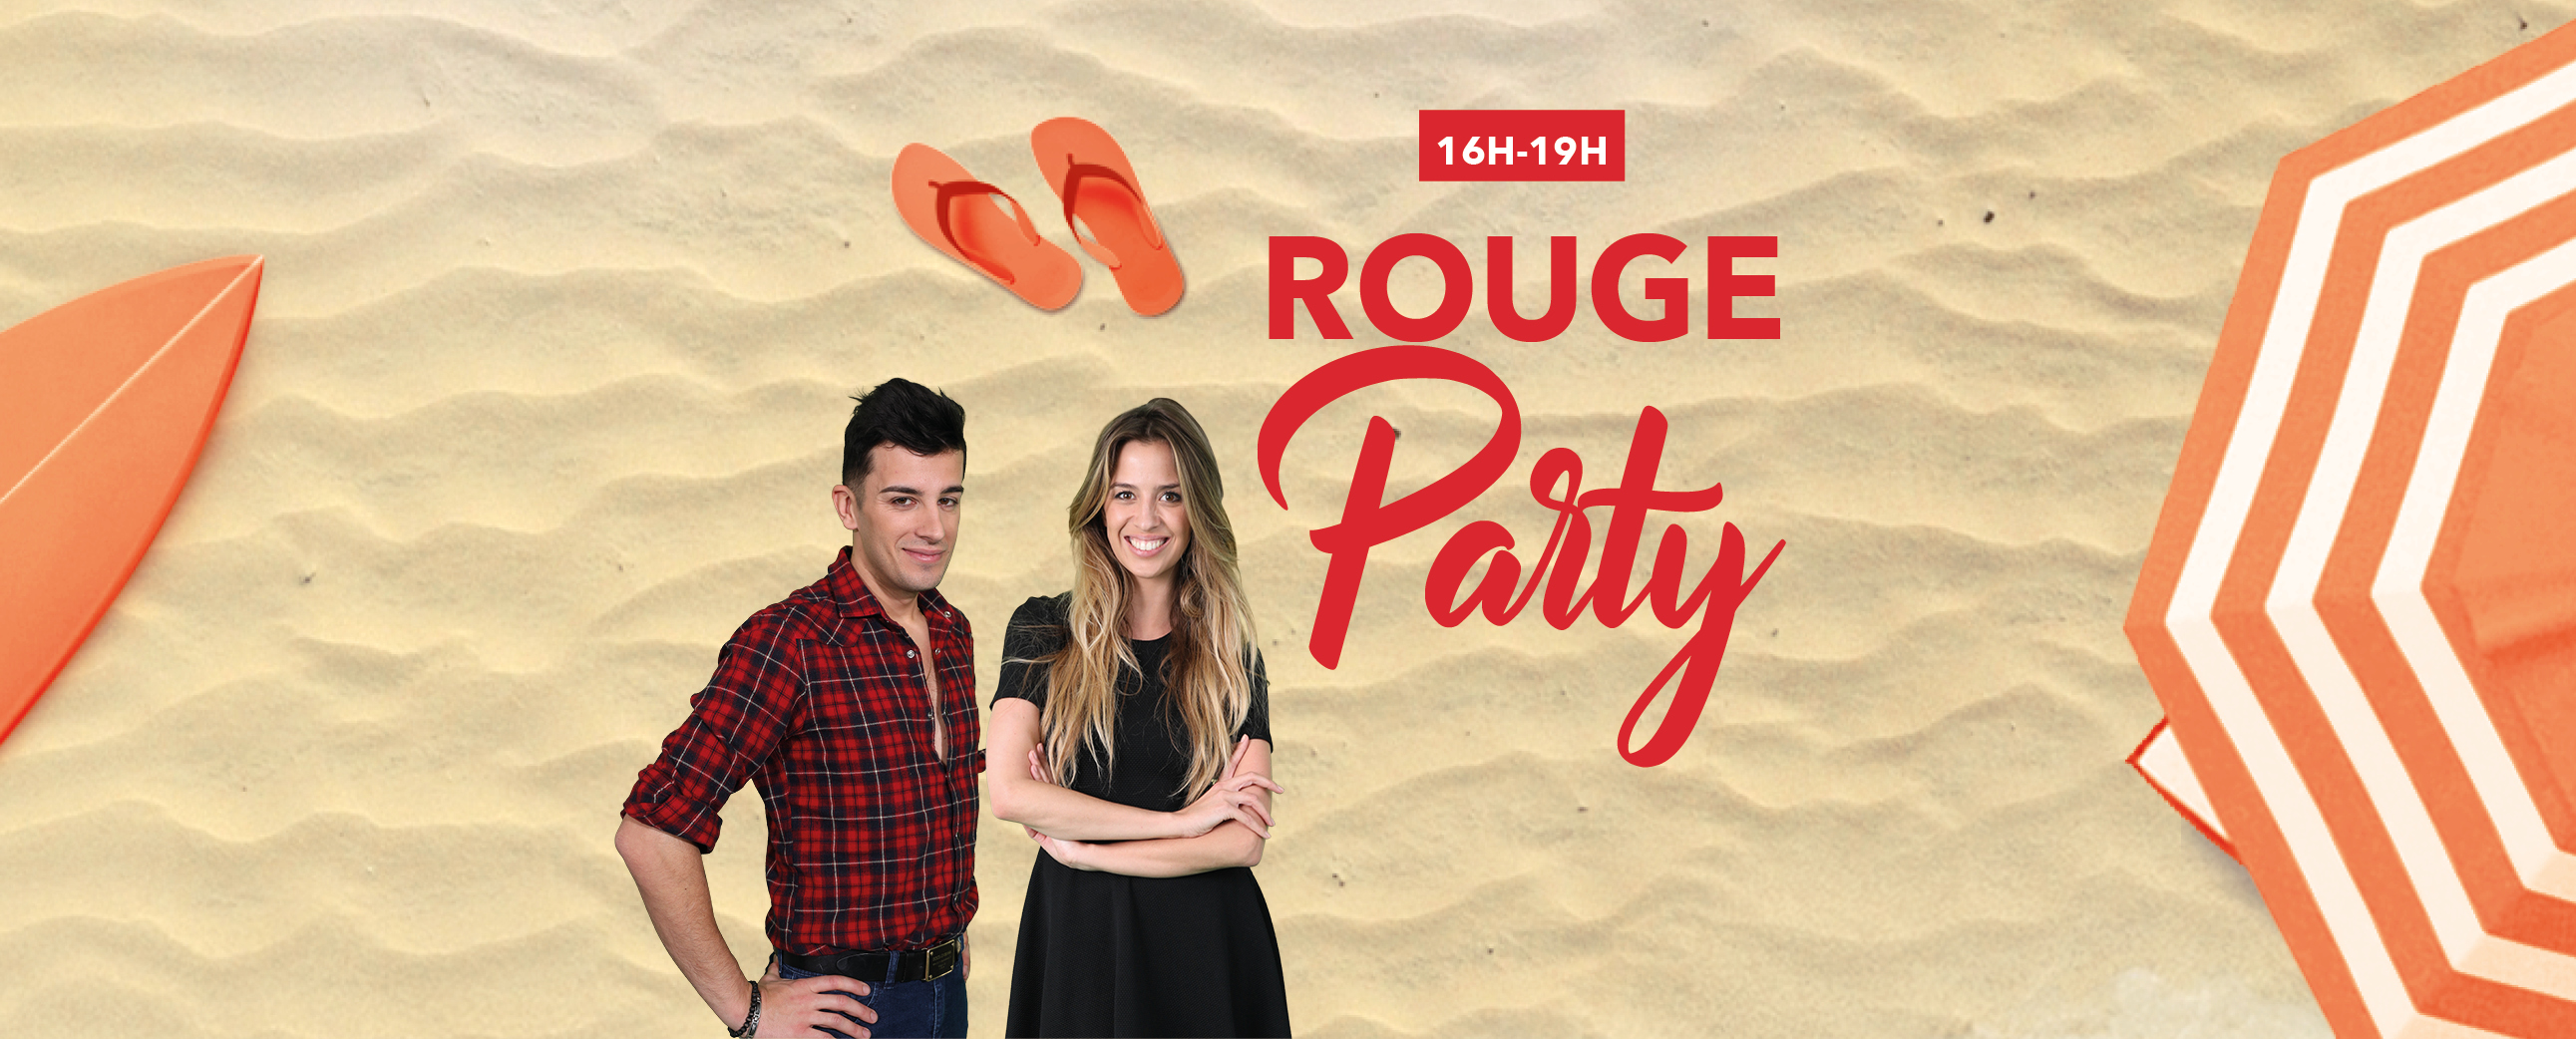 ROUGE PARTY